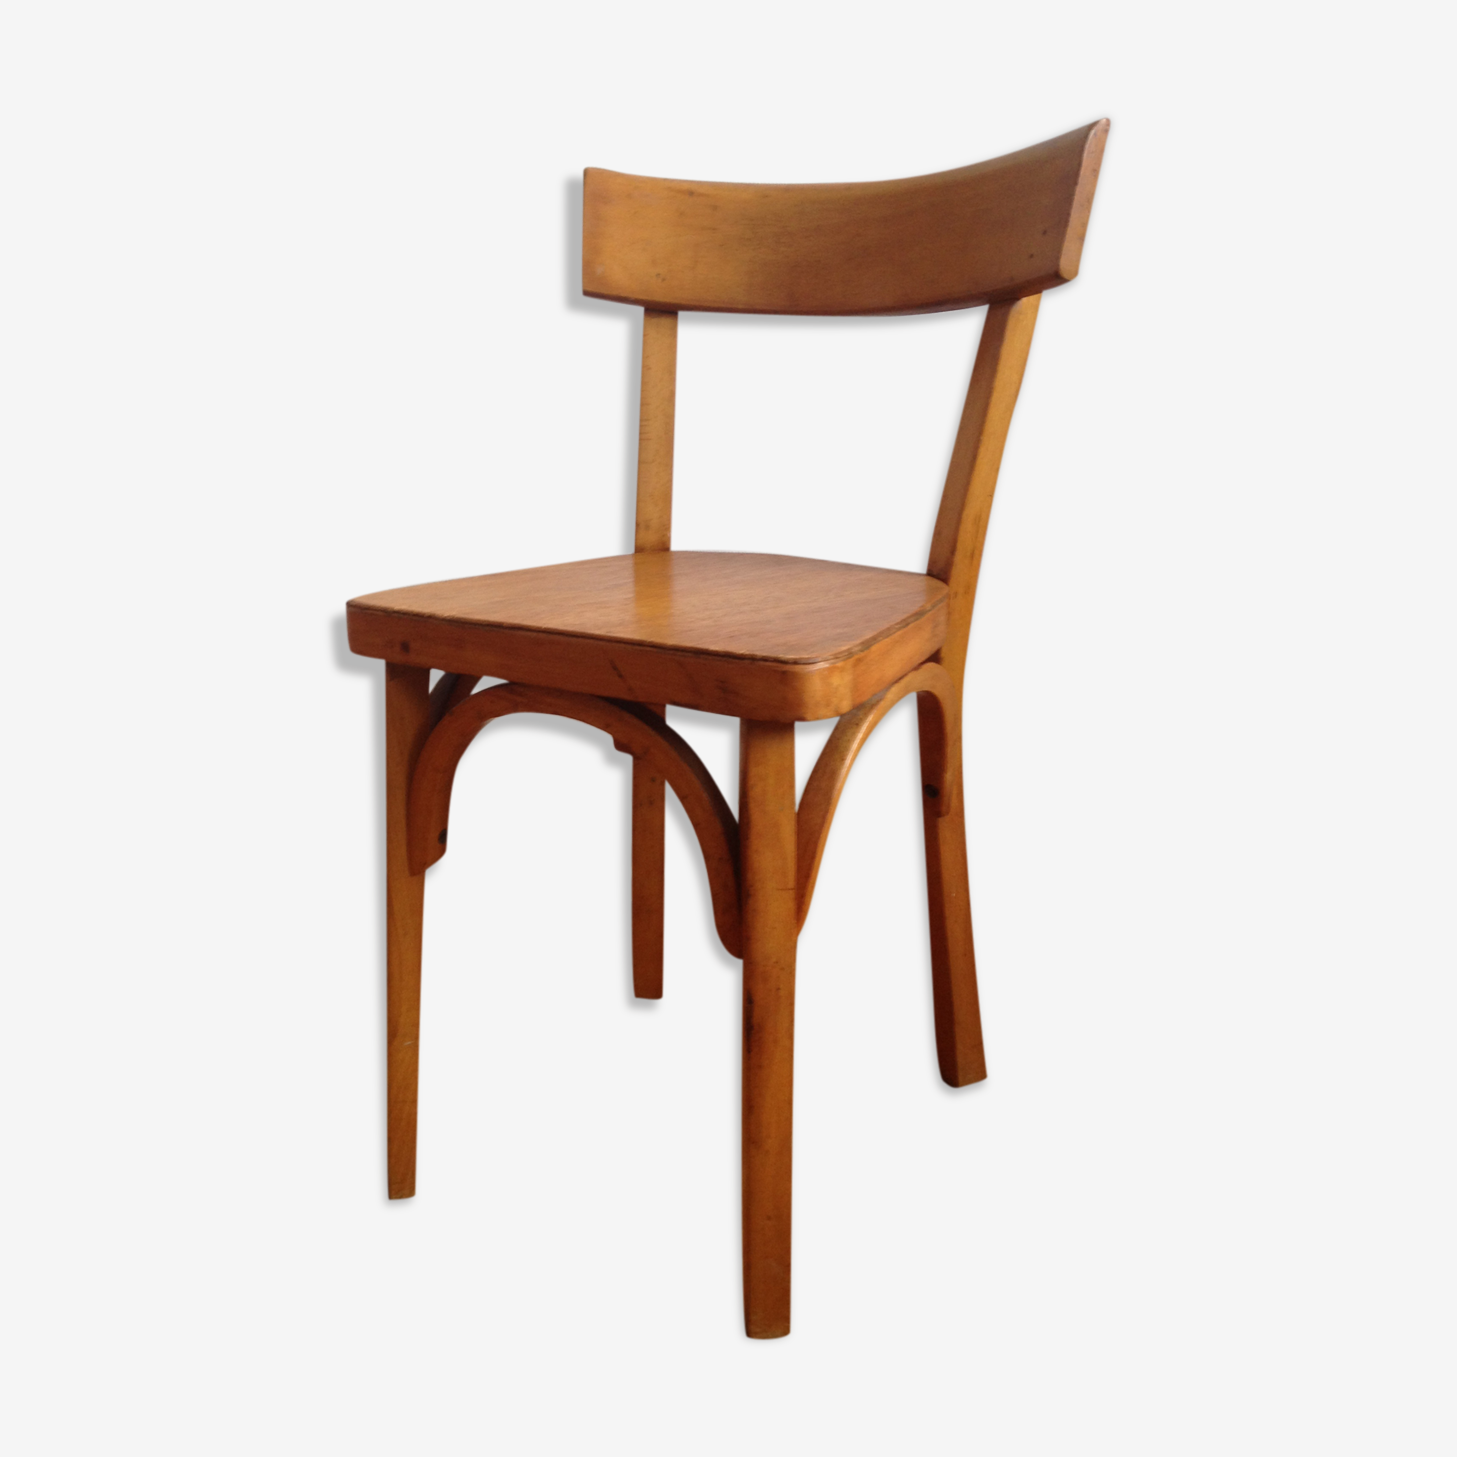 Children's chair baumann